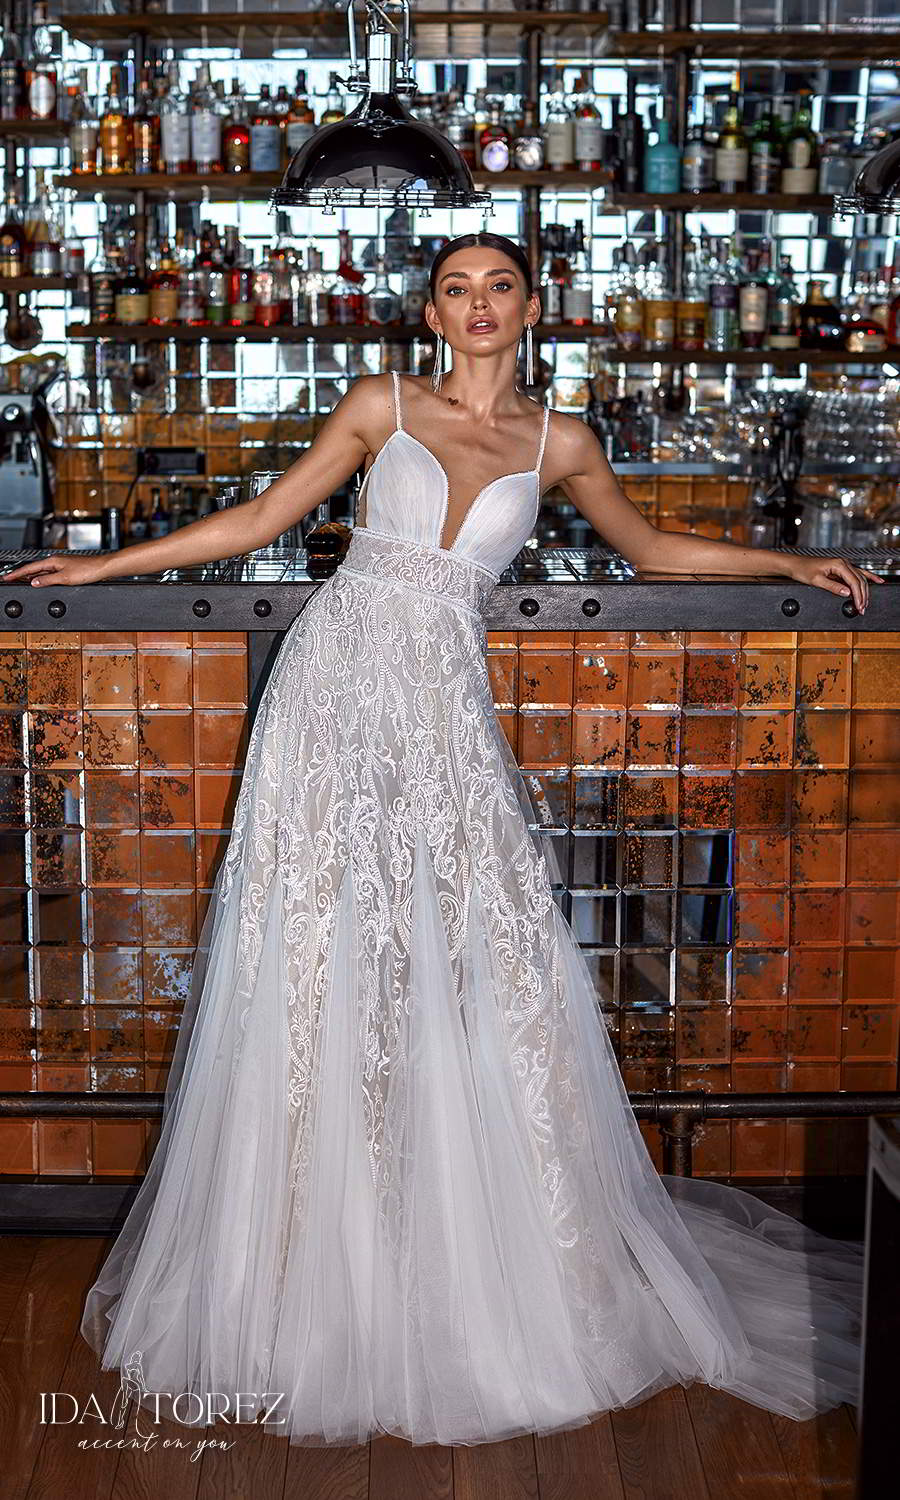 ida torez 2021 bridal sleeveles straps plunging sweetheart neckline embellished skirt a line ball gown wedding dress chapel train (your intention) mv